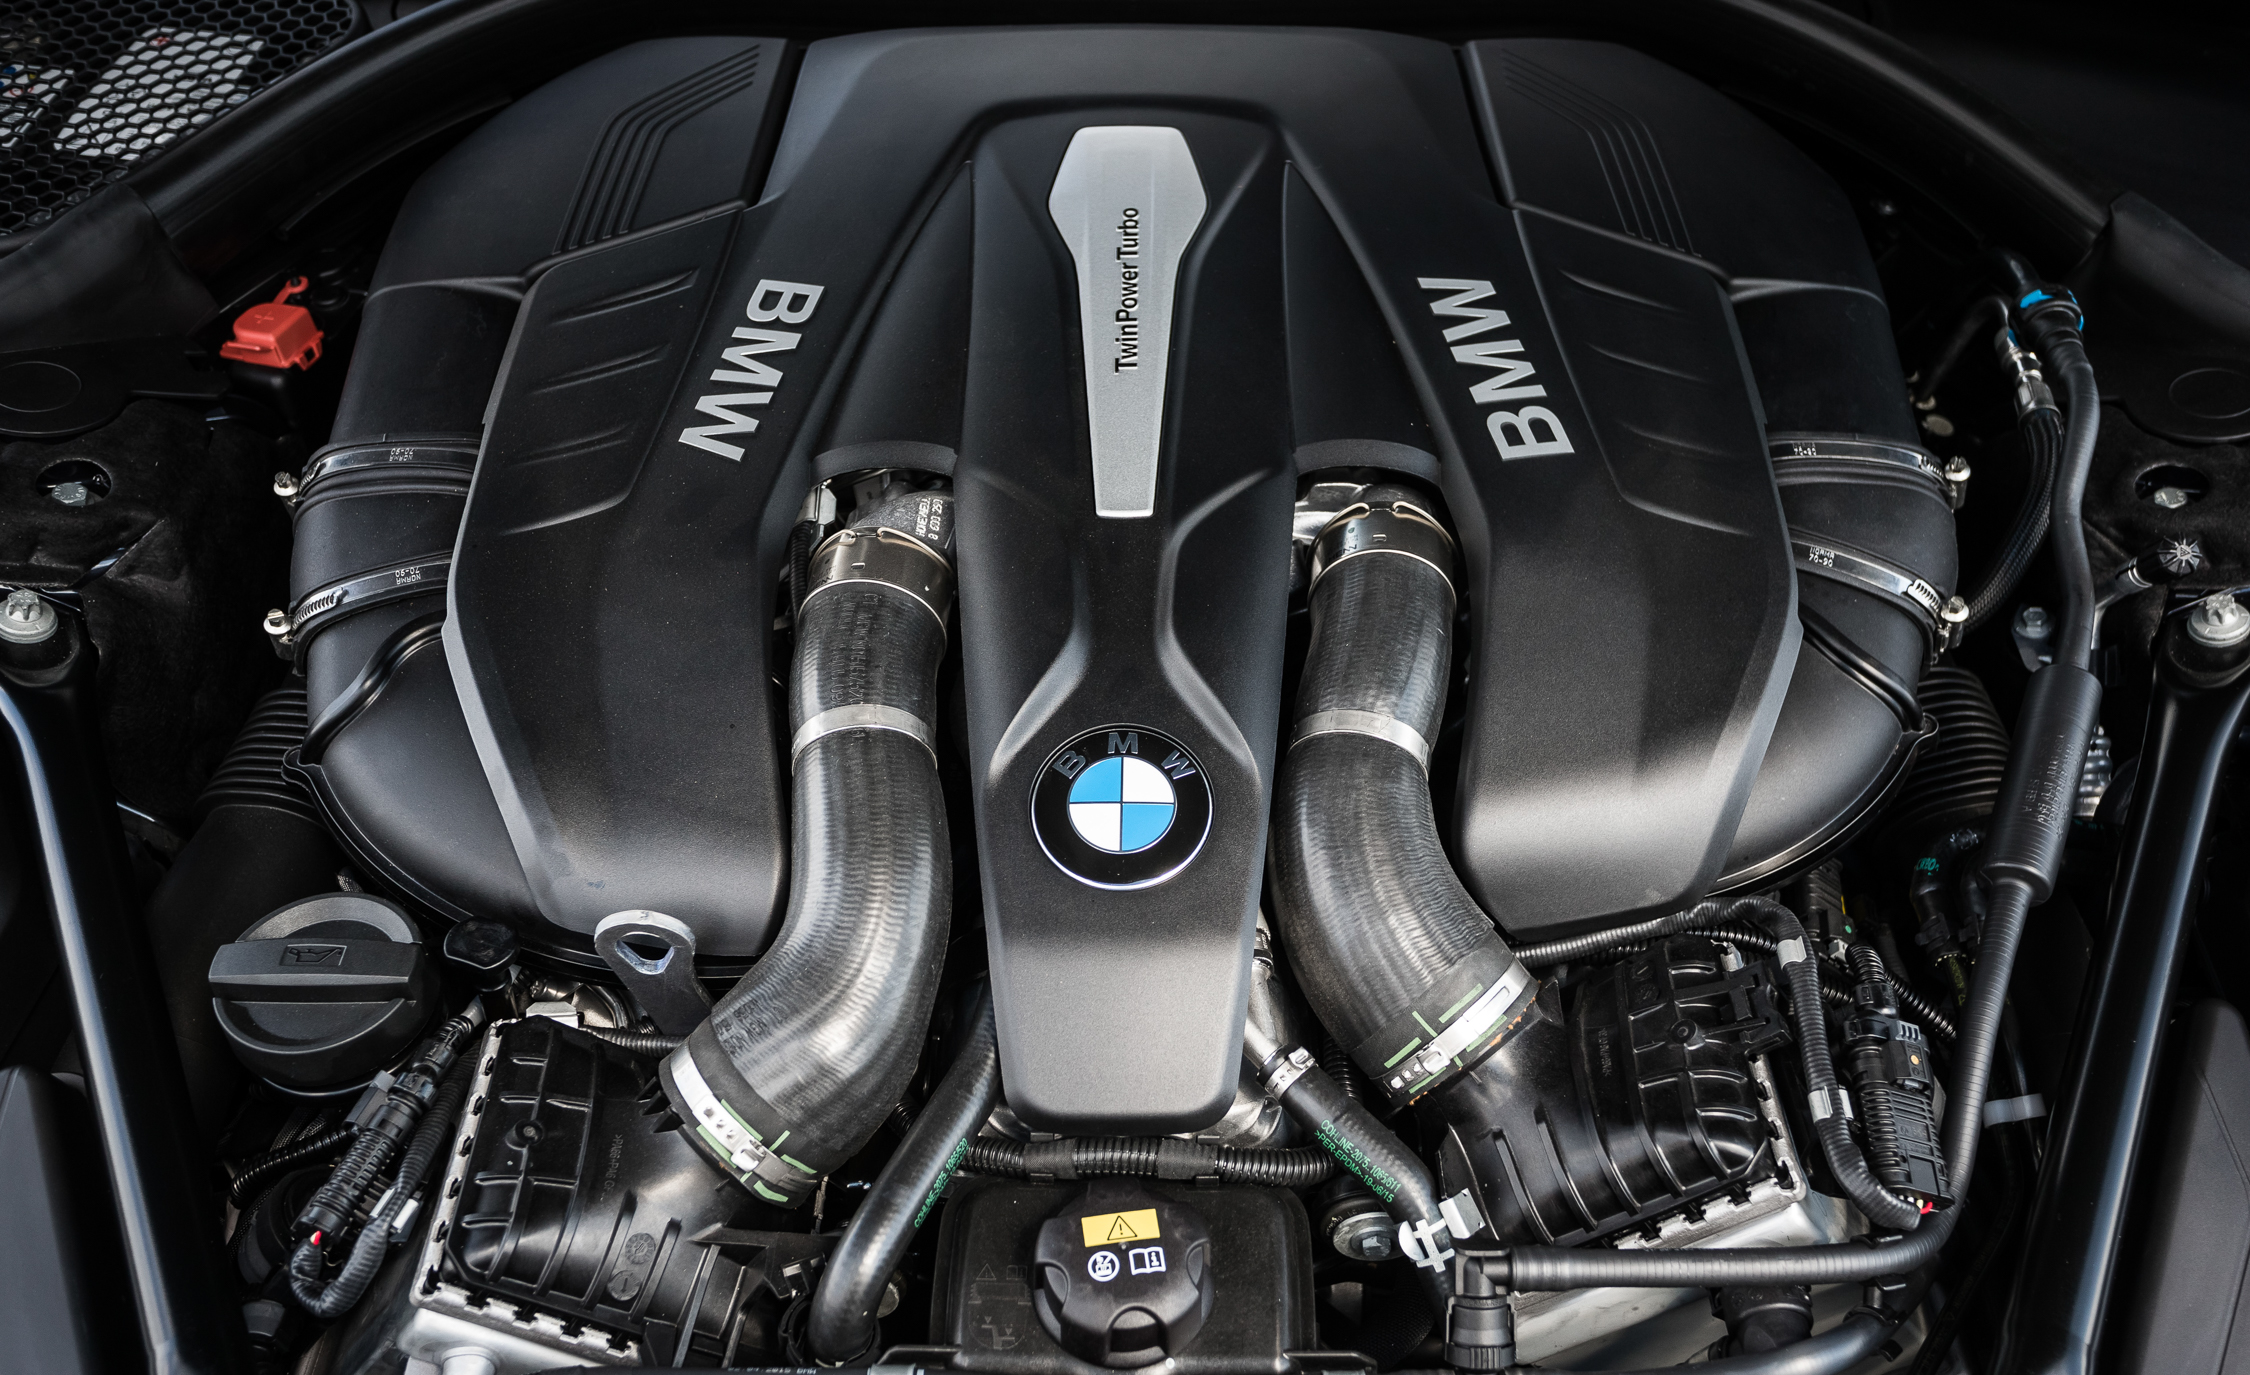 2016 BMW 750i XDrive Twin Turbocharged 4.4 Liter V 8 Engine (Photo 19 of 29)